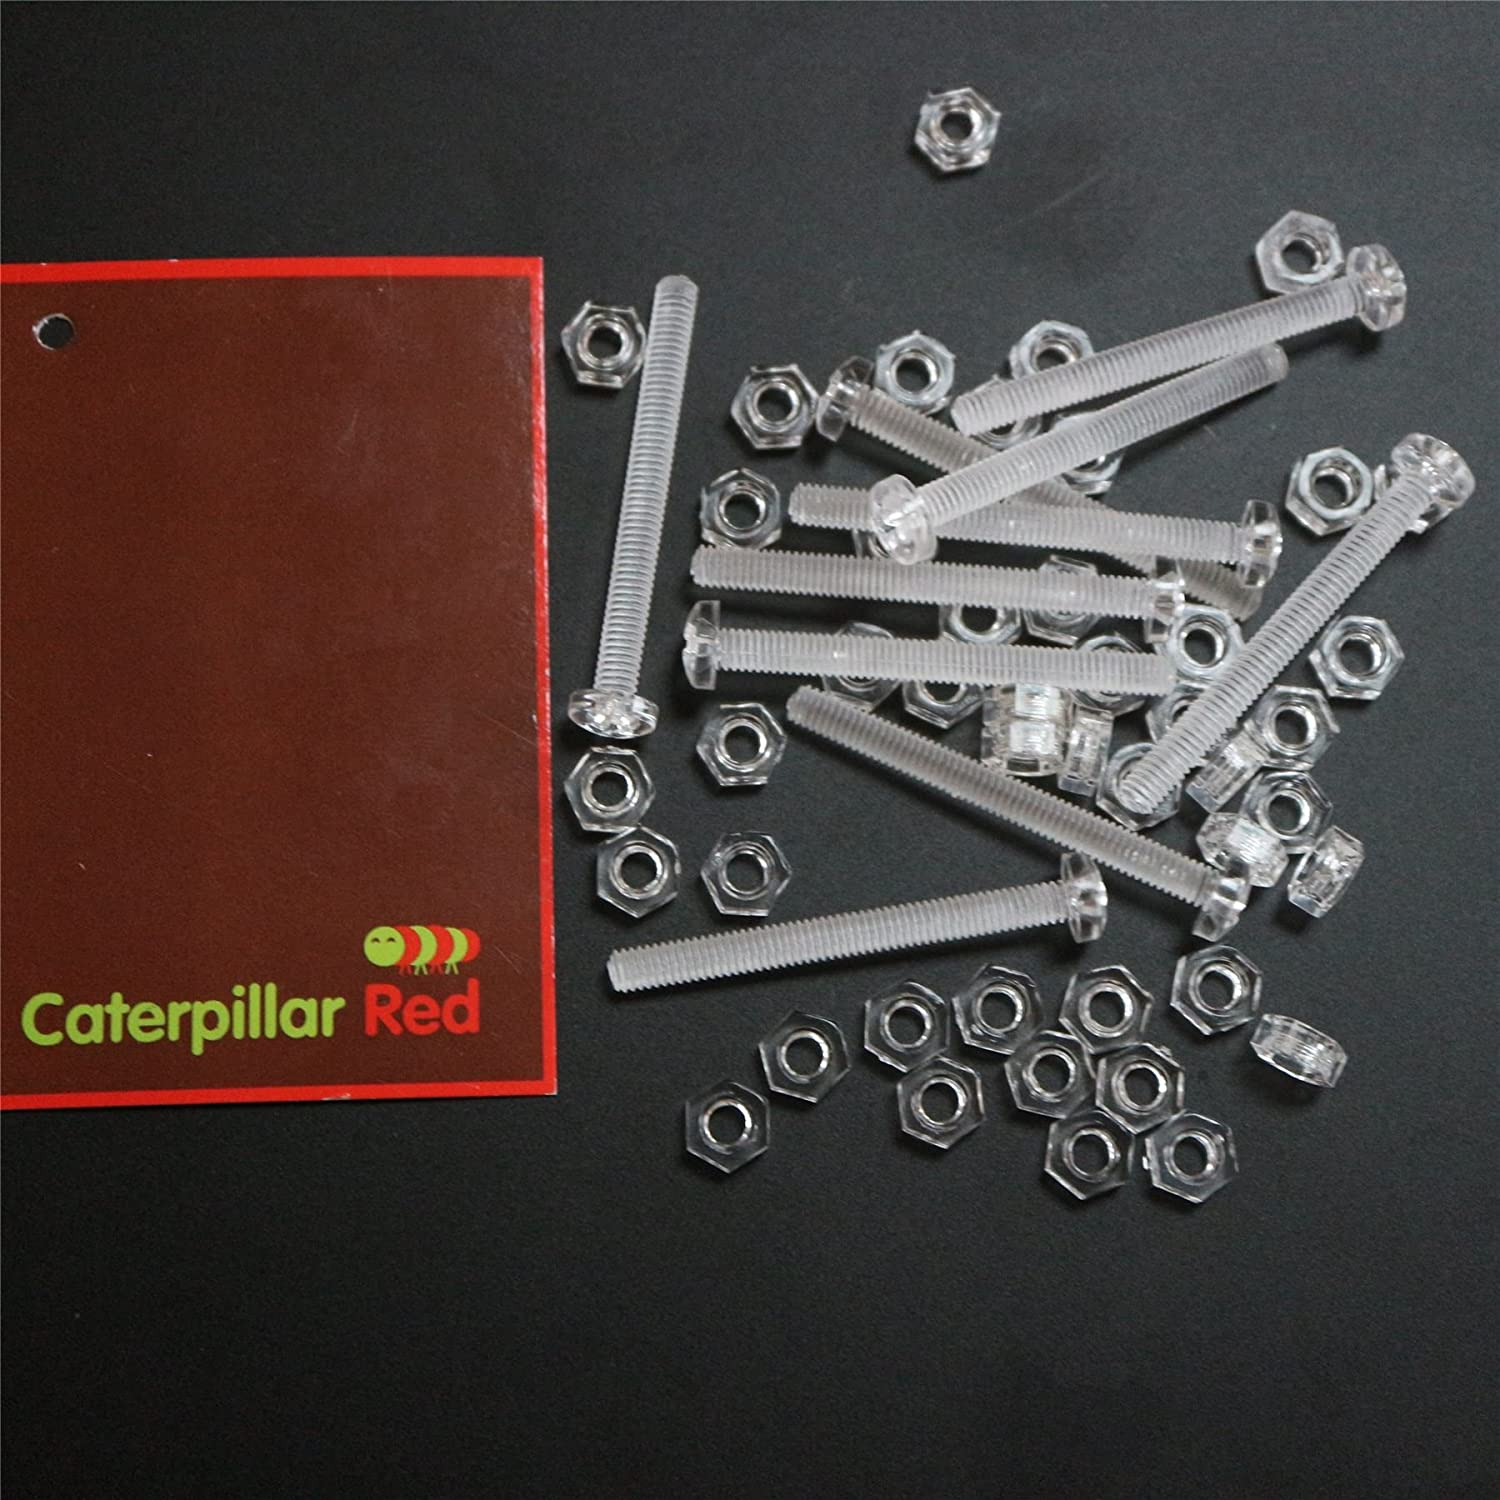 Acrylic Plastic Screws 5//32 x 1-37//64 Caterpillar Red Pack of 60 Transparent Clear Plastic Acrylic M4 x 40mm Nuts /& Bolts